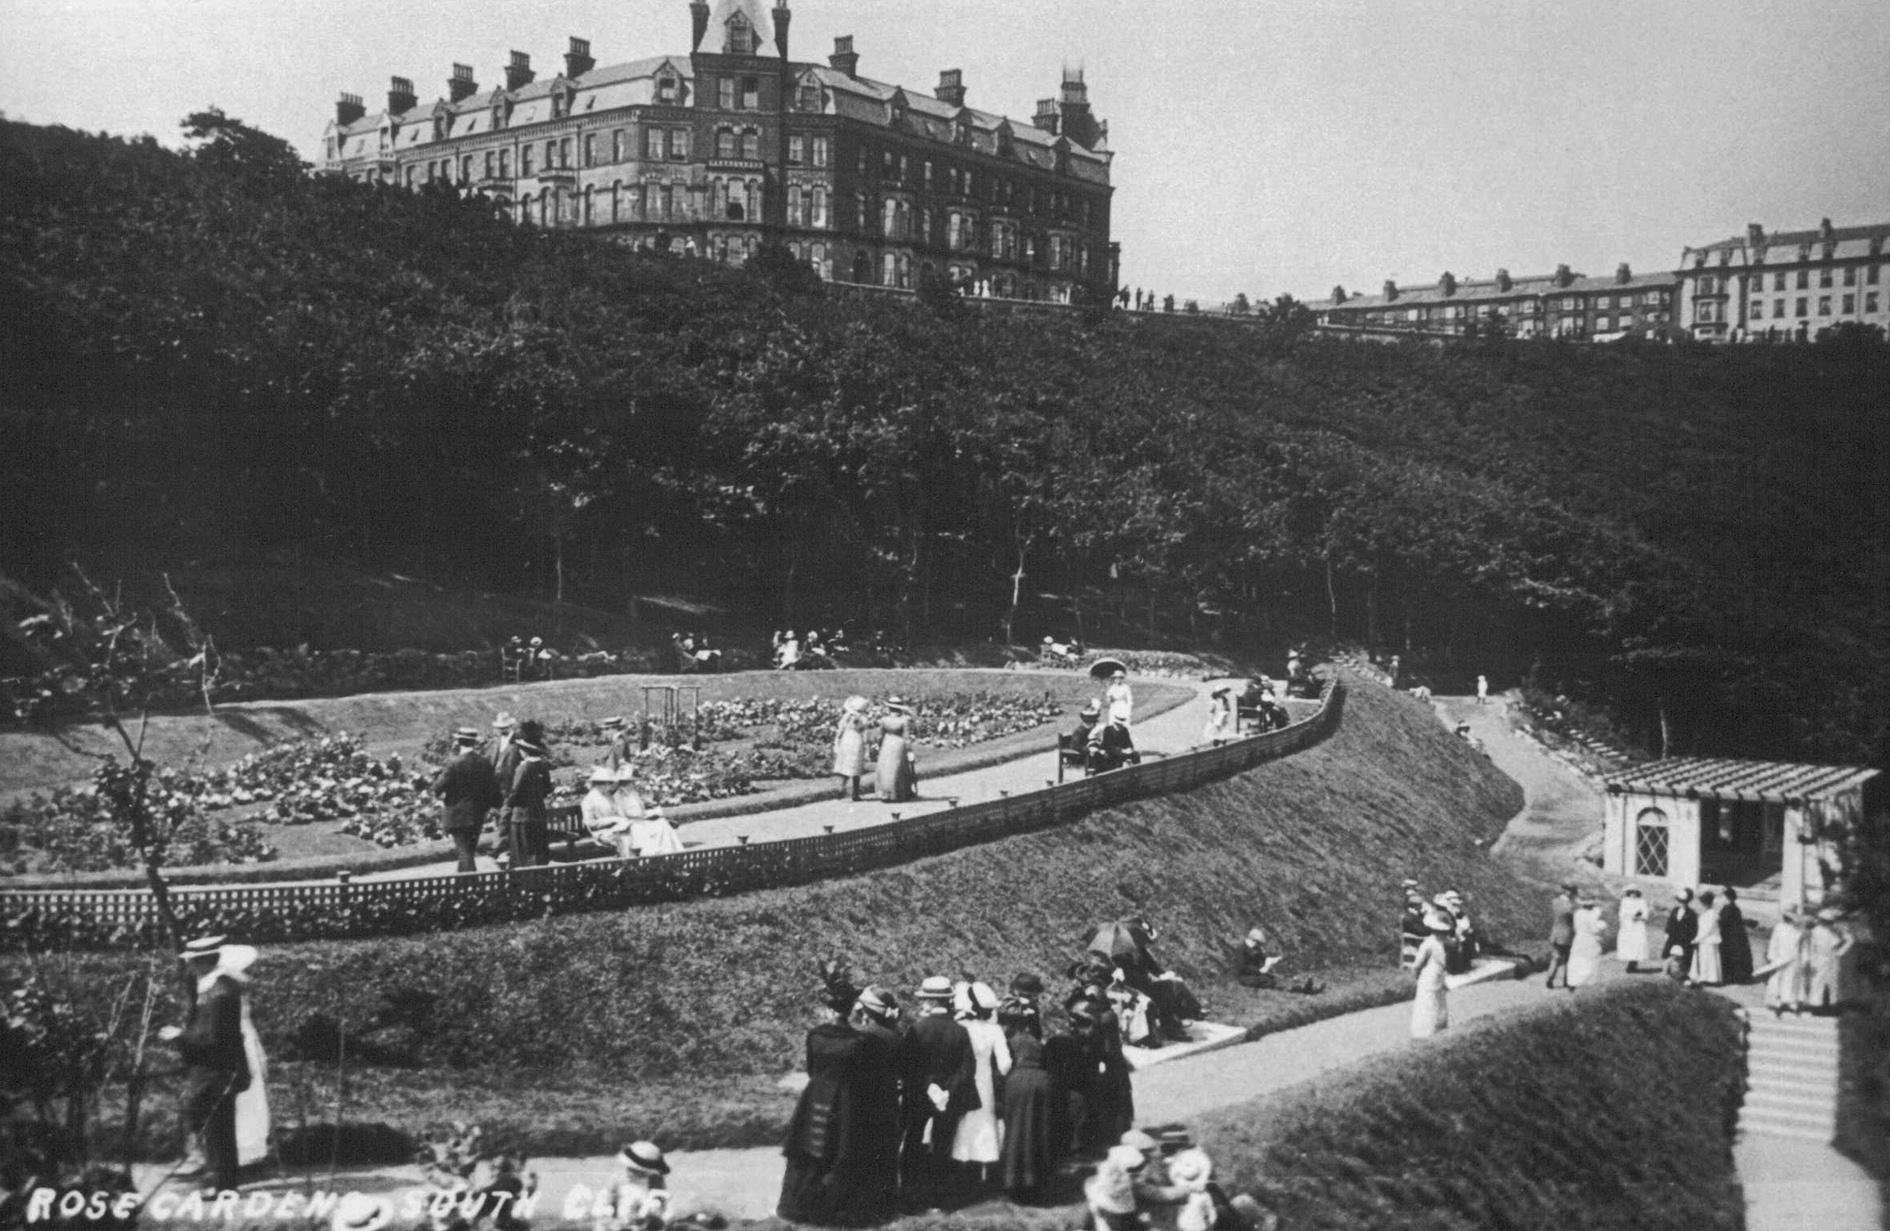 Historic picture of the Rose Garden in South Cliff Gardens, Scarborough